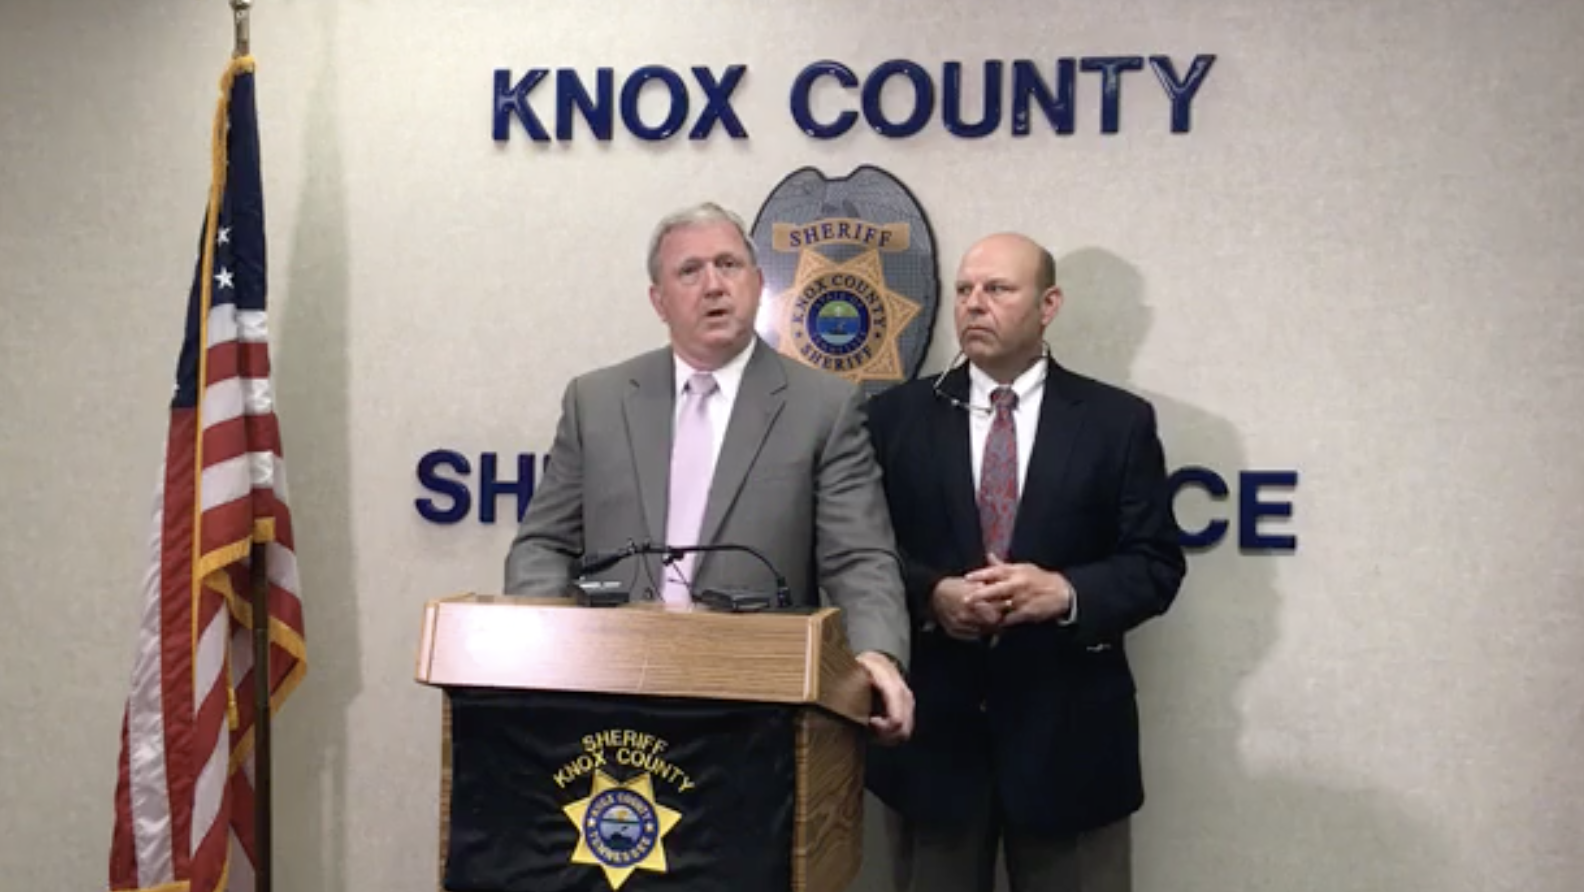 KCSO holds presser to discuss Monday night's fatal W  Knox shooting